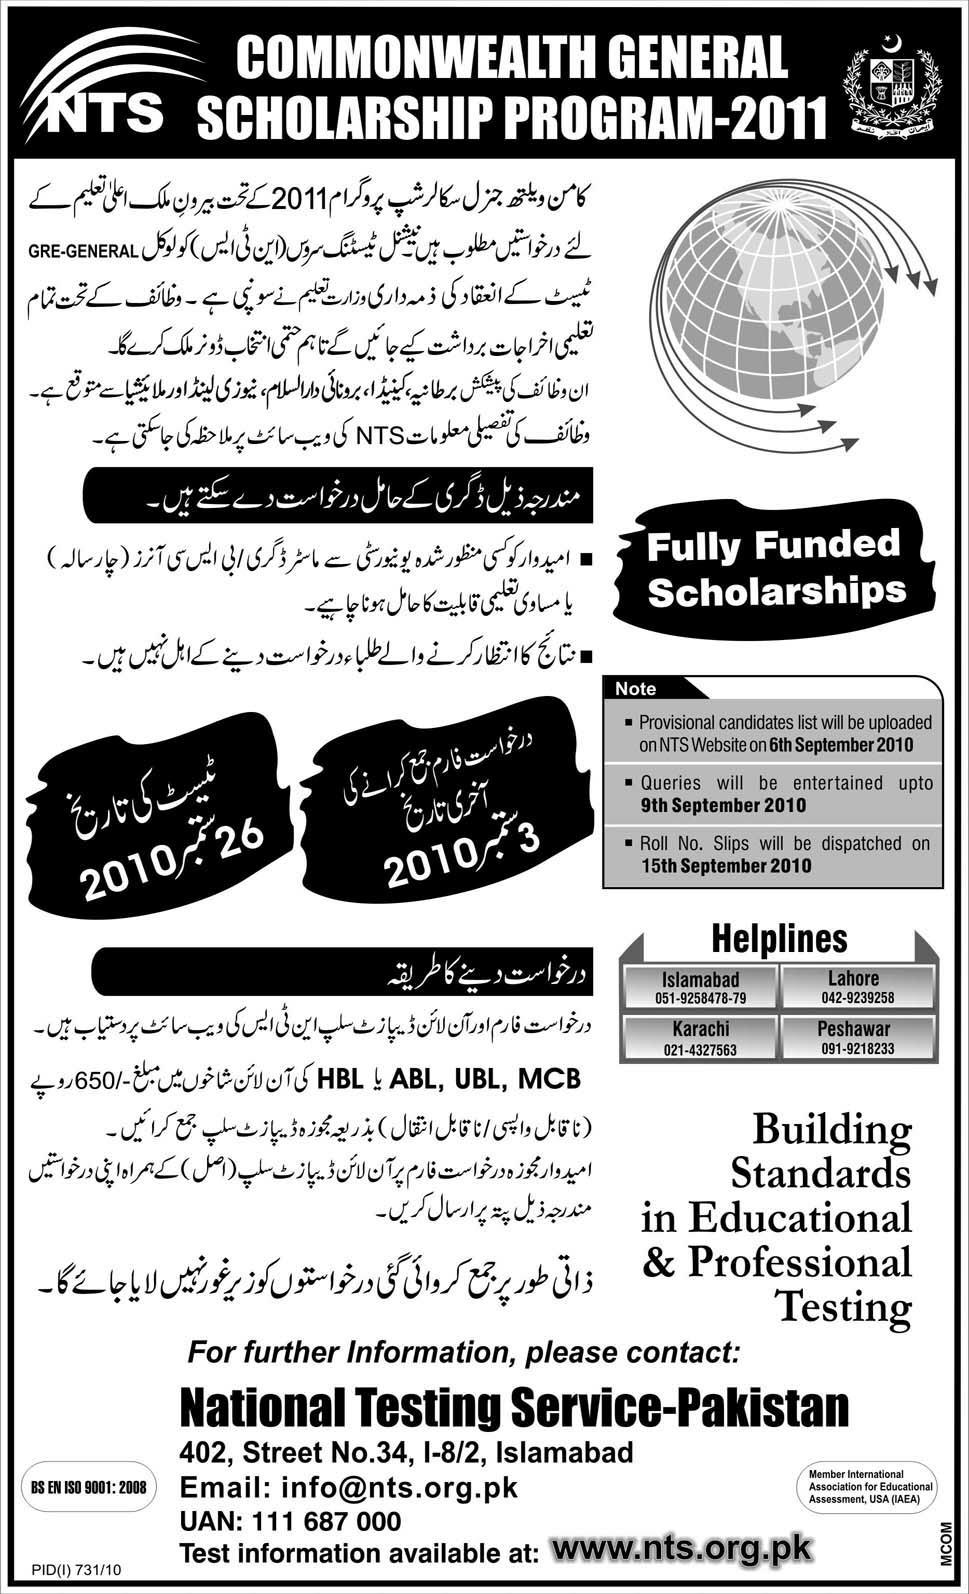 nts commonwealth general scholarship program 2011 meray mutabiq. Black Bedroom Furniture Sets. Home Design Ideas